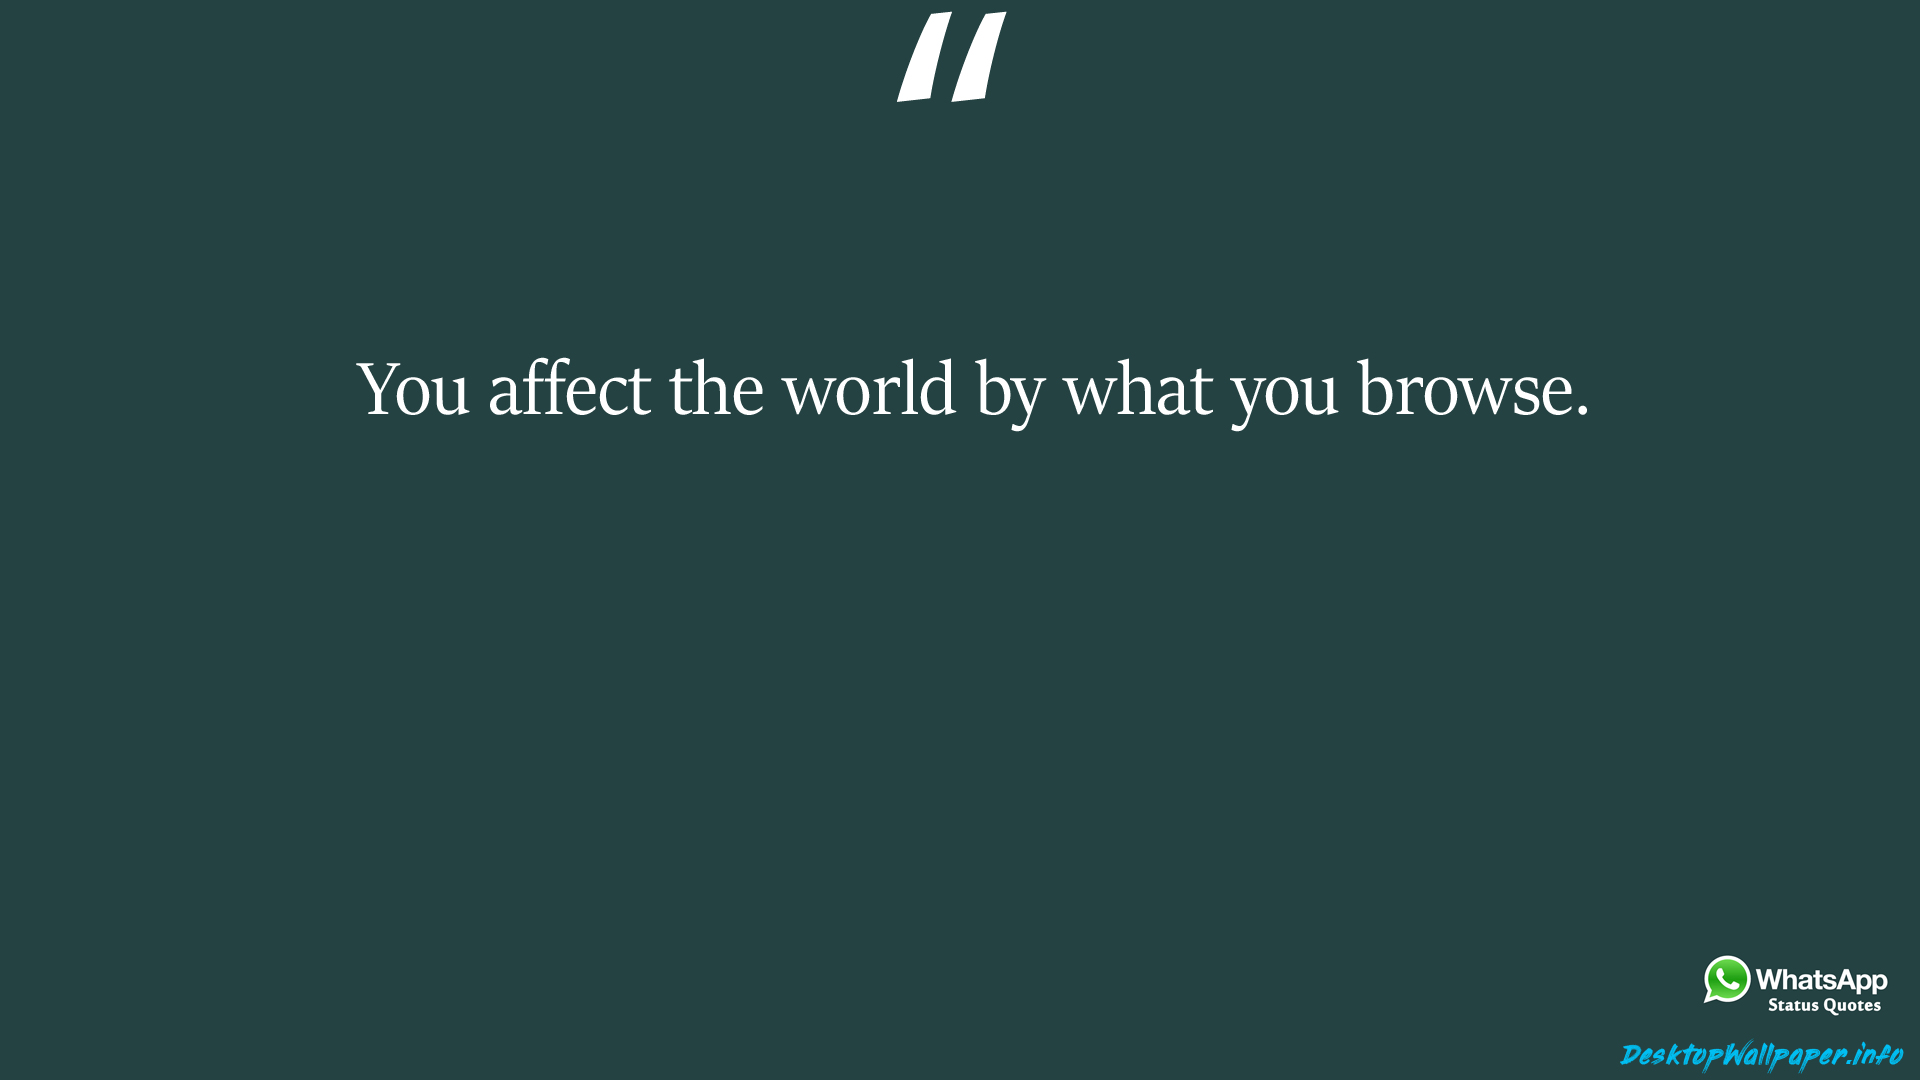 You affect the world by what you browse